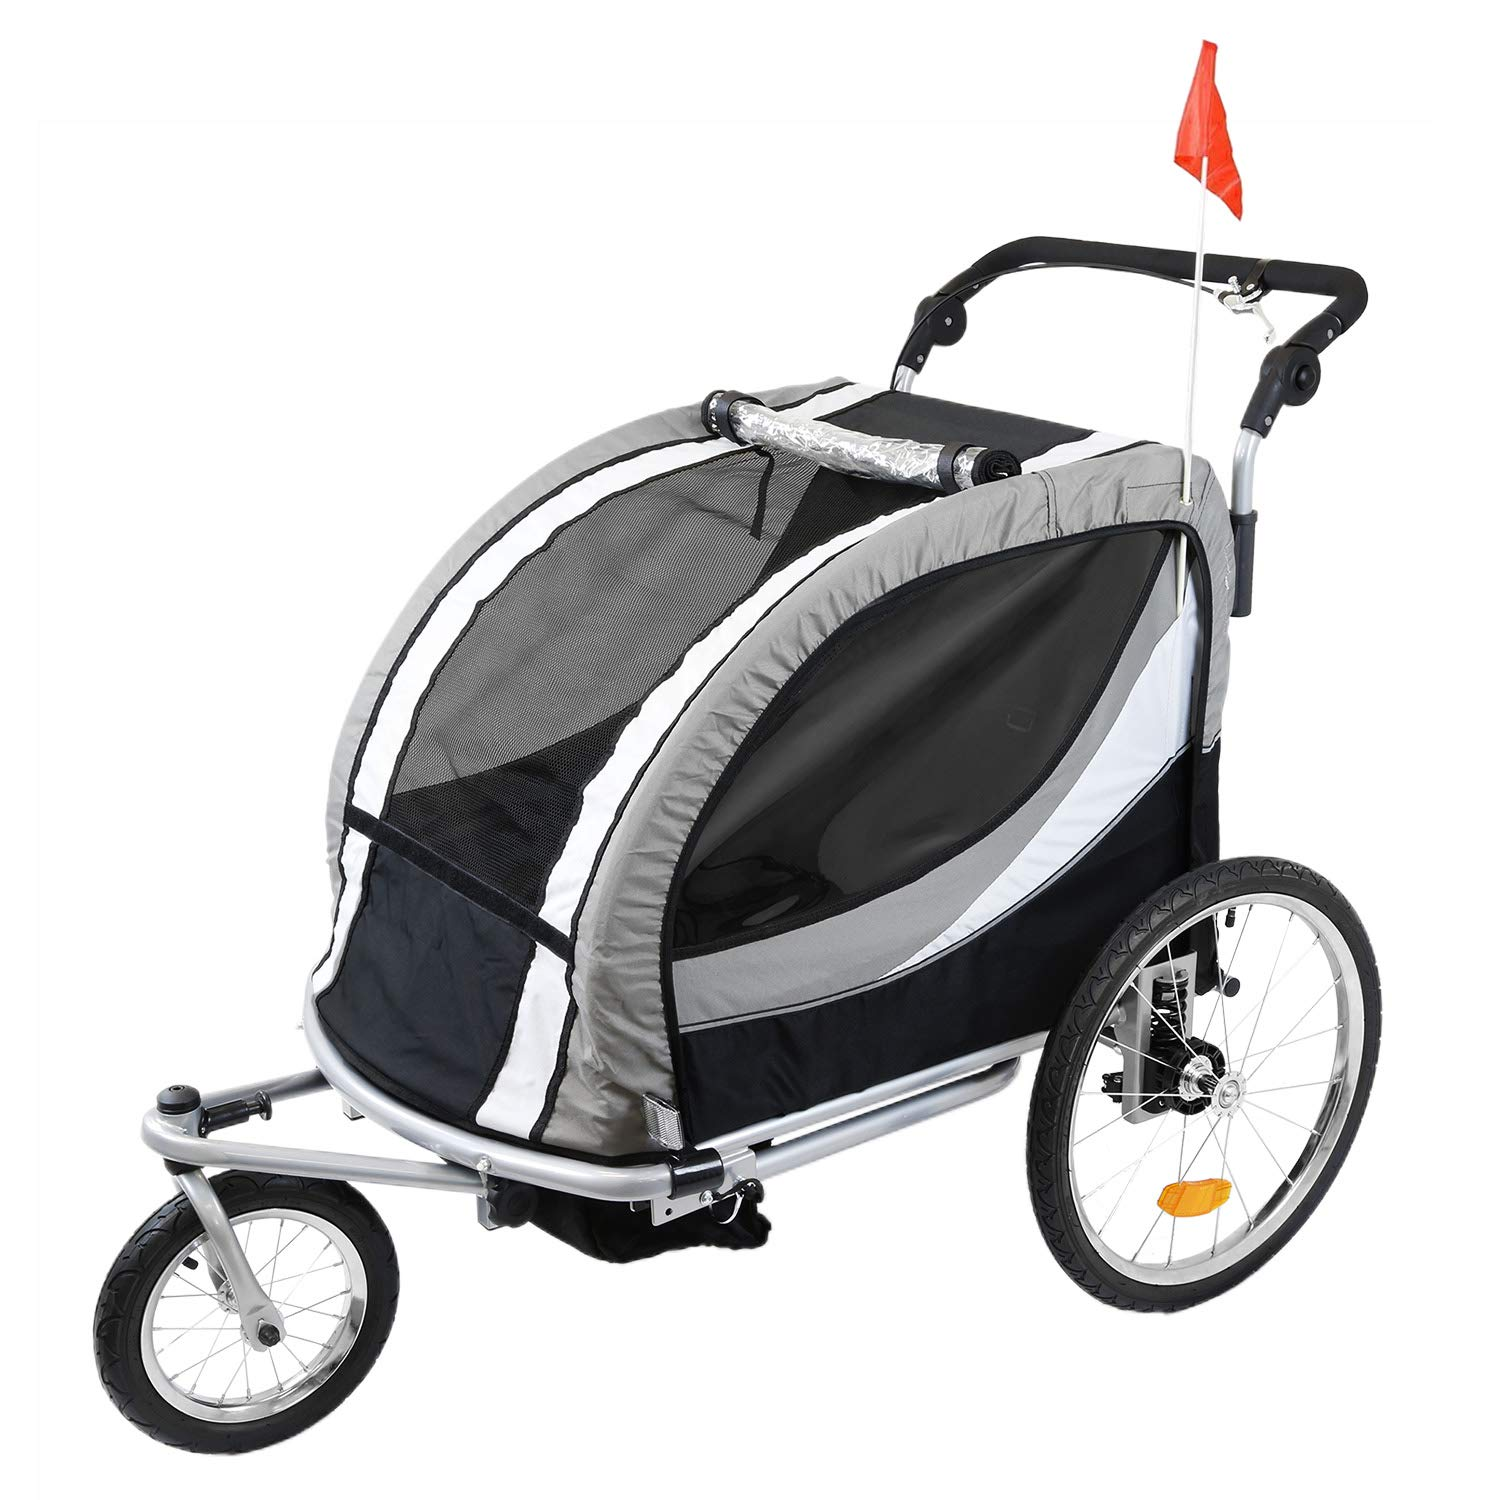 Clevr 3-in-1 Double 2 Seat Bicycle Bike Trailer Jogger Stroller for Kids Children | Foldable Collapsible w/Pivot Front Wheel, Grey by Clevr